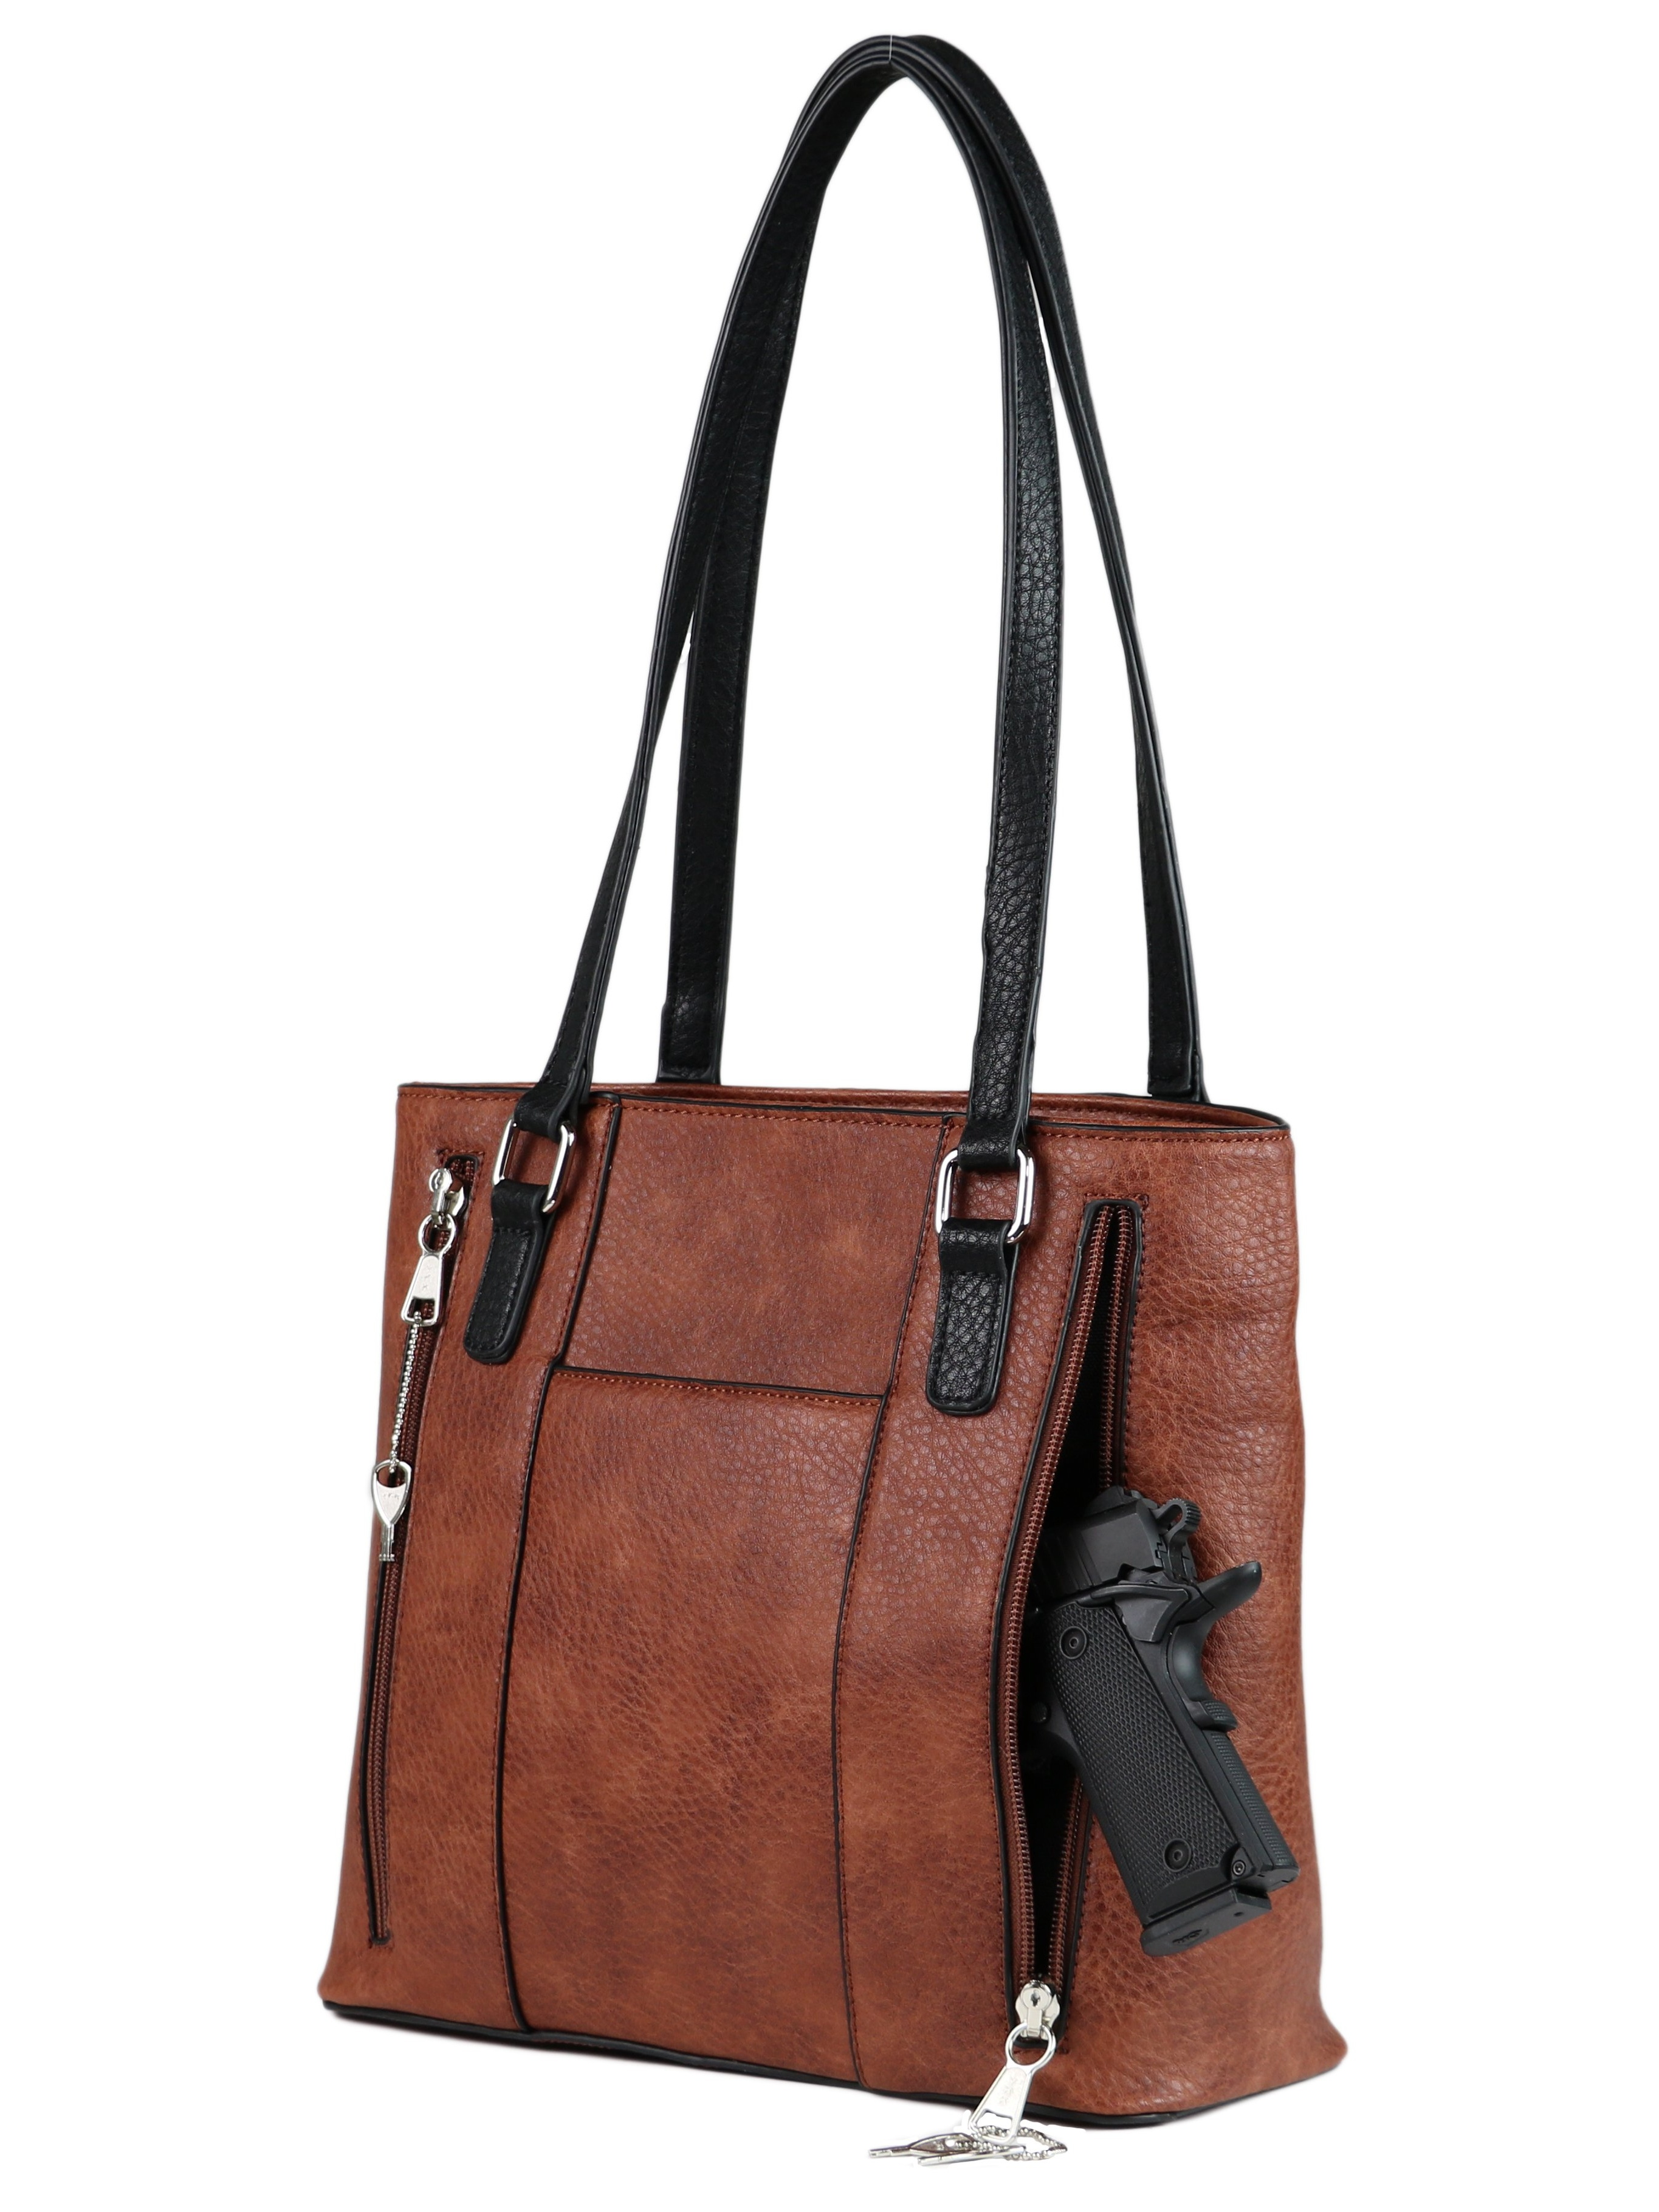 Concealed Carry Jessica Gun Satchel Bag by Lady Conceal,Locking Weapon CCW Purse